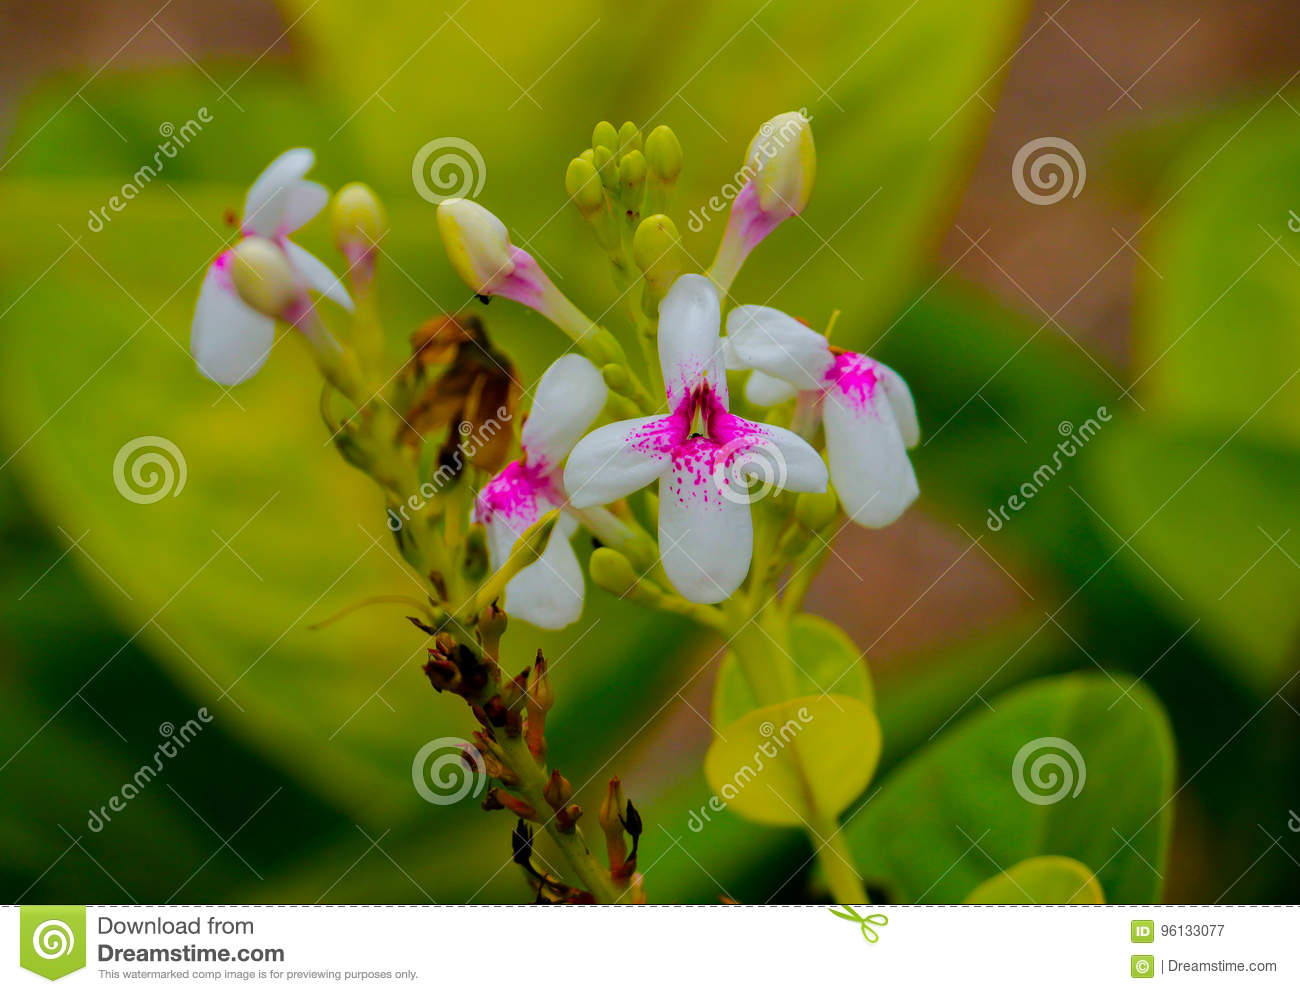 Blooms stock image image of garden whiteflowers flowers 96133077 download blooms stock image image of garden whiteflowers flowers 96133077 mightylinksfo